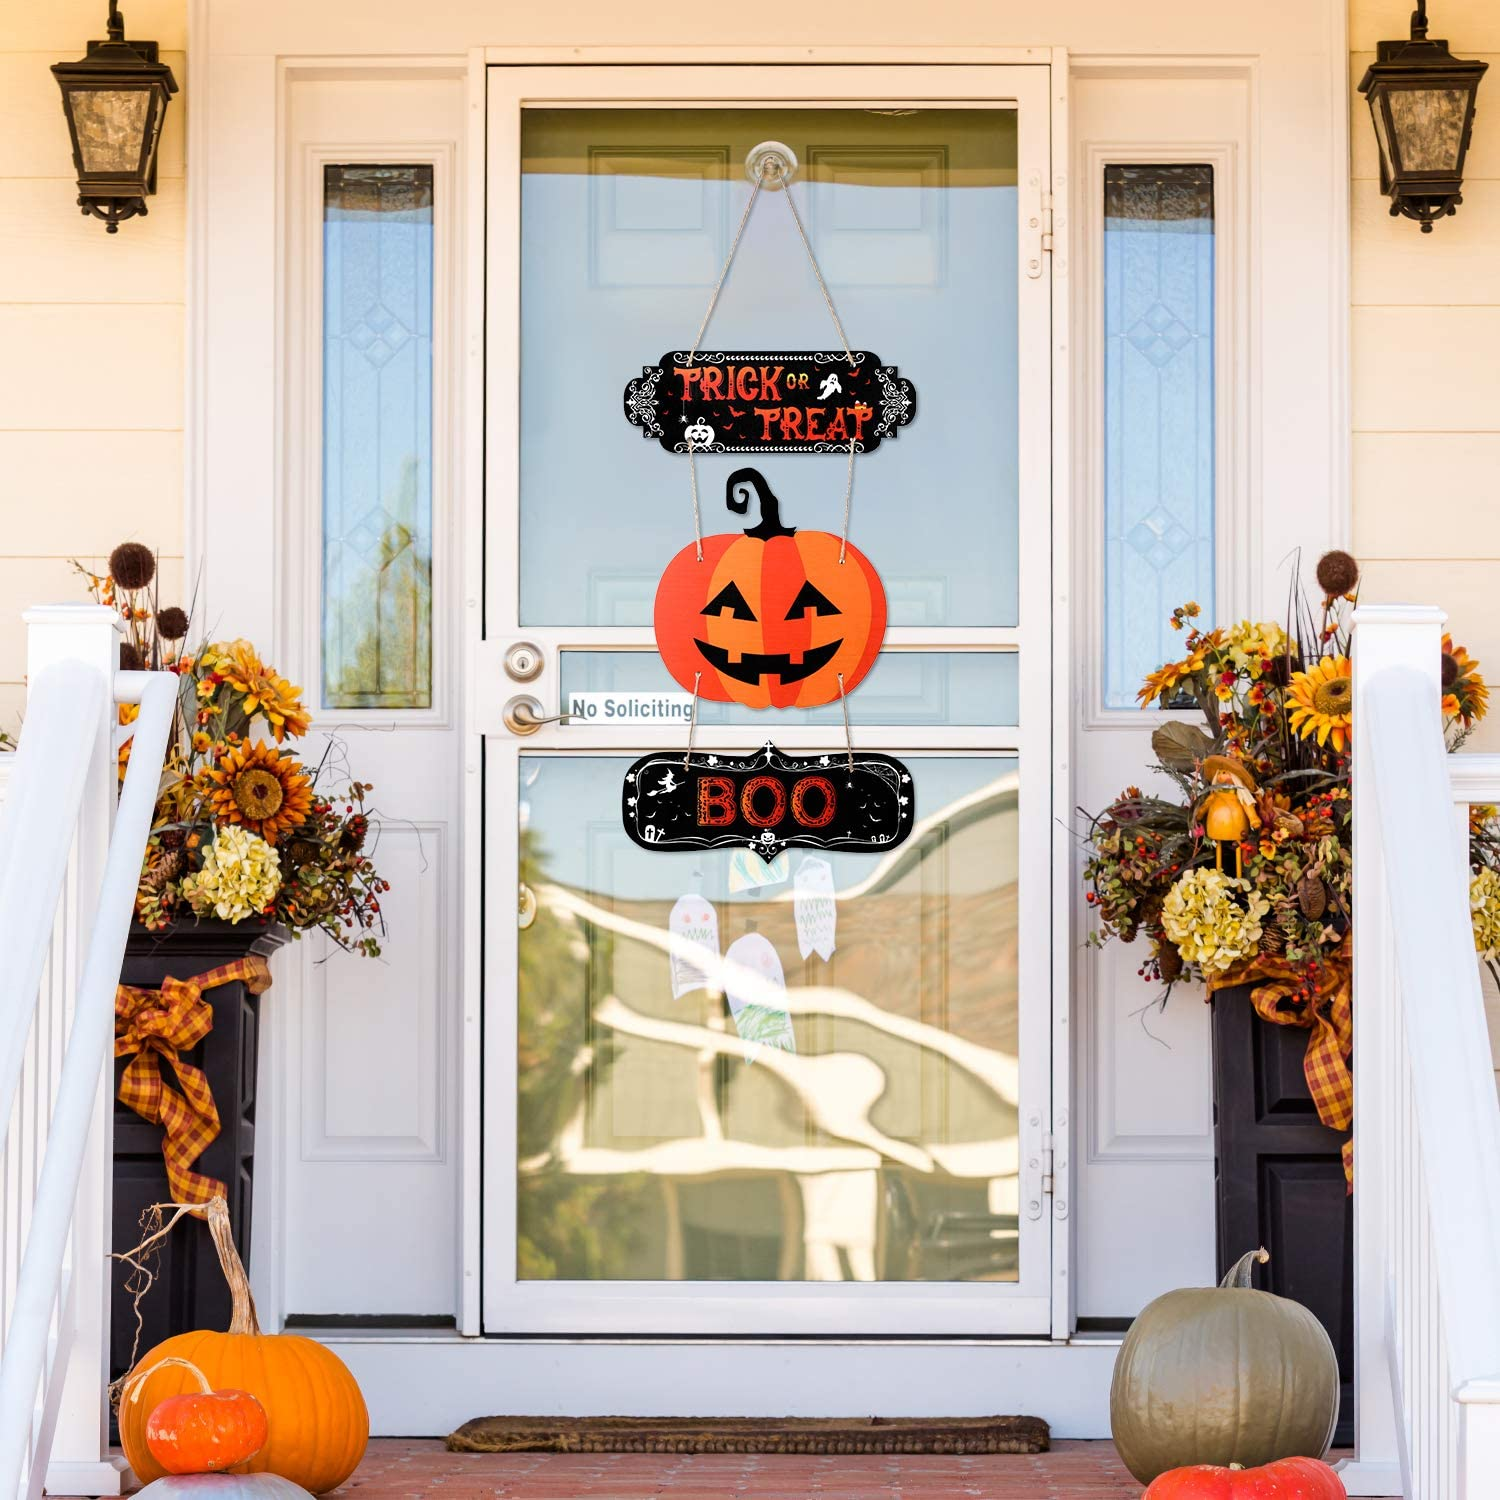 Sumind Halloween Party Decoration Trick or Treat Hanging Sign Boo Halloween Wall Decor Wooden Door Sign Rustic for Halloween Room Decor Photo Prop